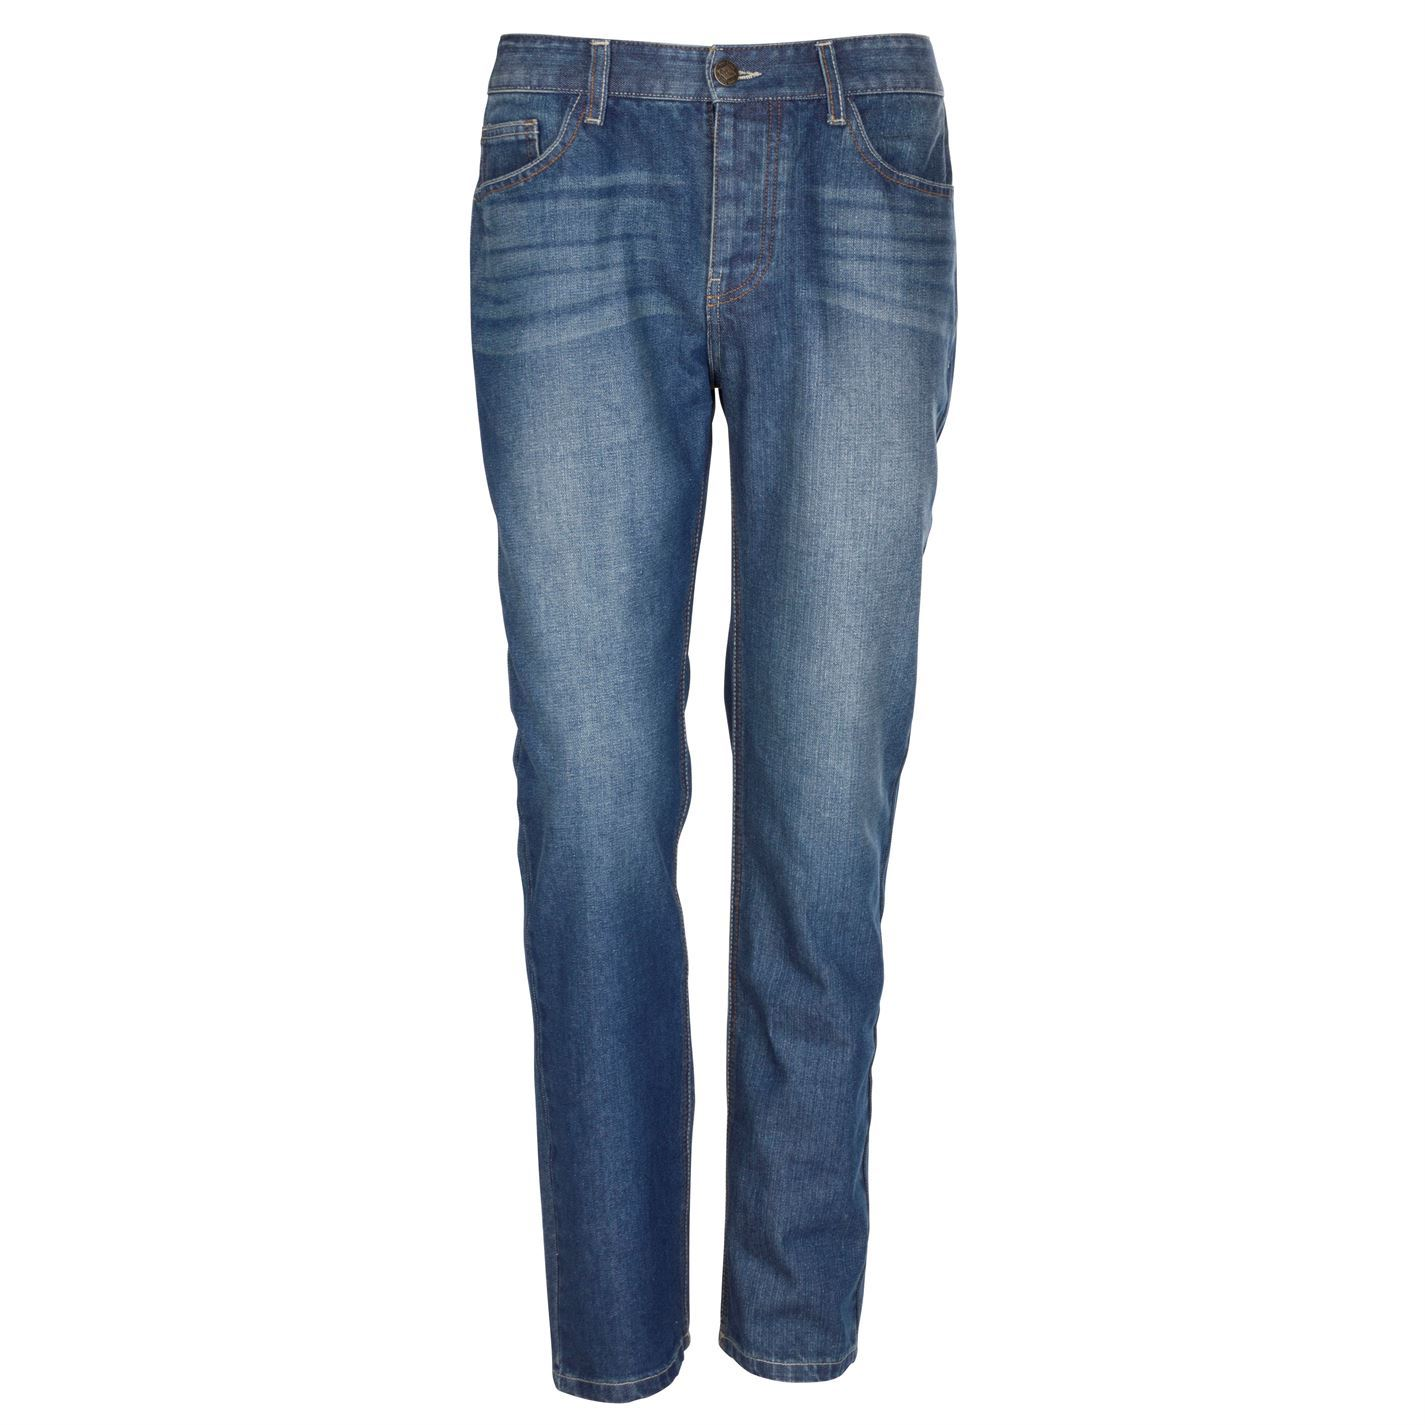 Lee-Cooper-Mens-Classic-Regular-Fit-Jeans-Straight-Pants-Trousers-Bottoms-Cotton